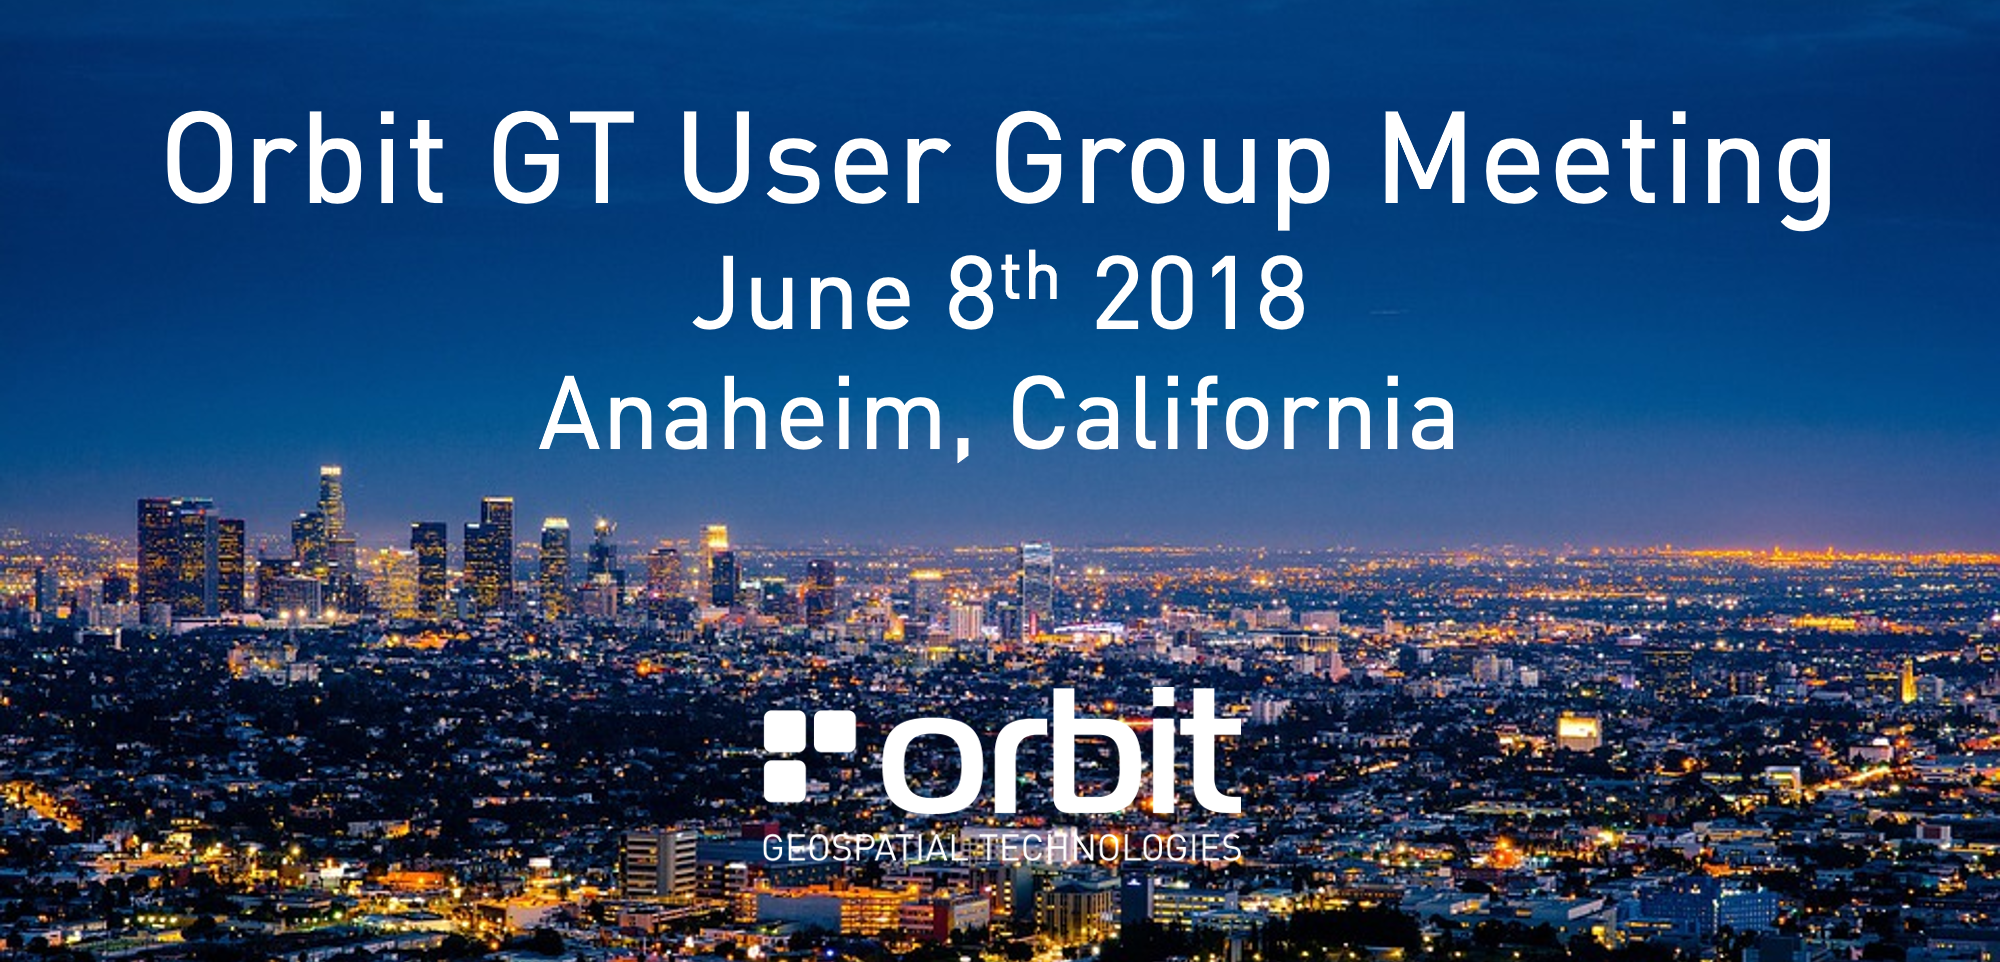 Orbit GT Orbit GT User Group Meeting, Anaheim, CA, USA